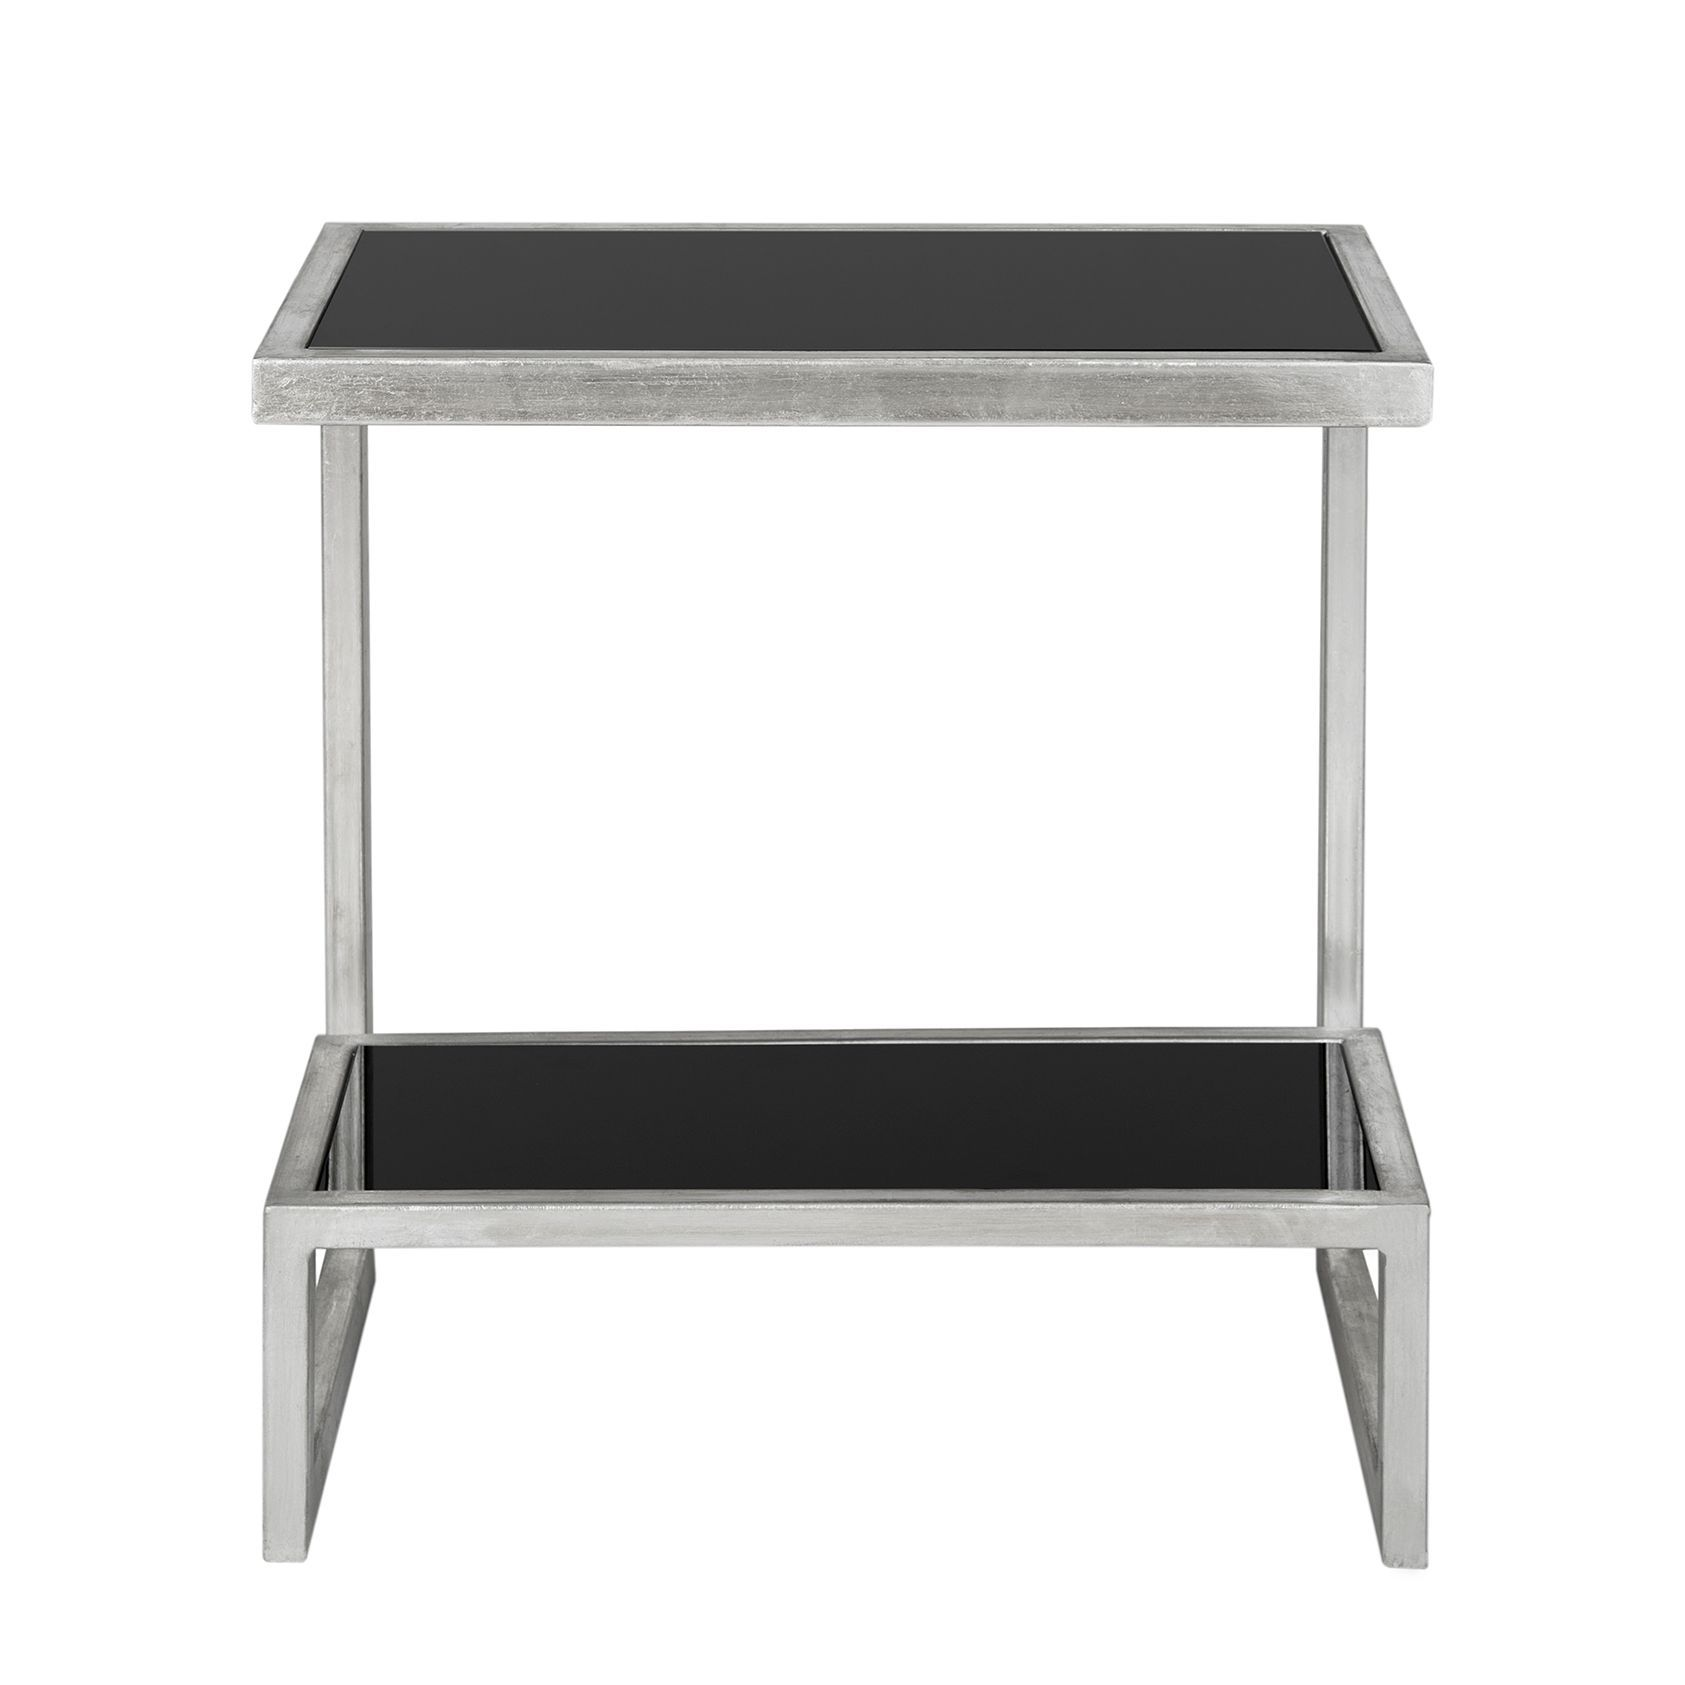 tables basses kuom  7 suisses tables basses  tables basses en